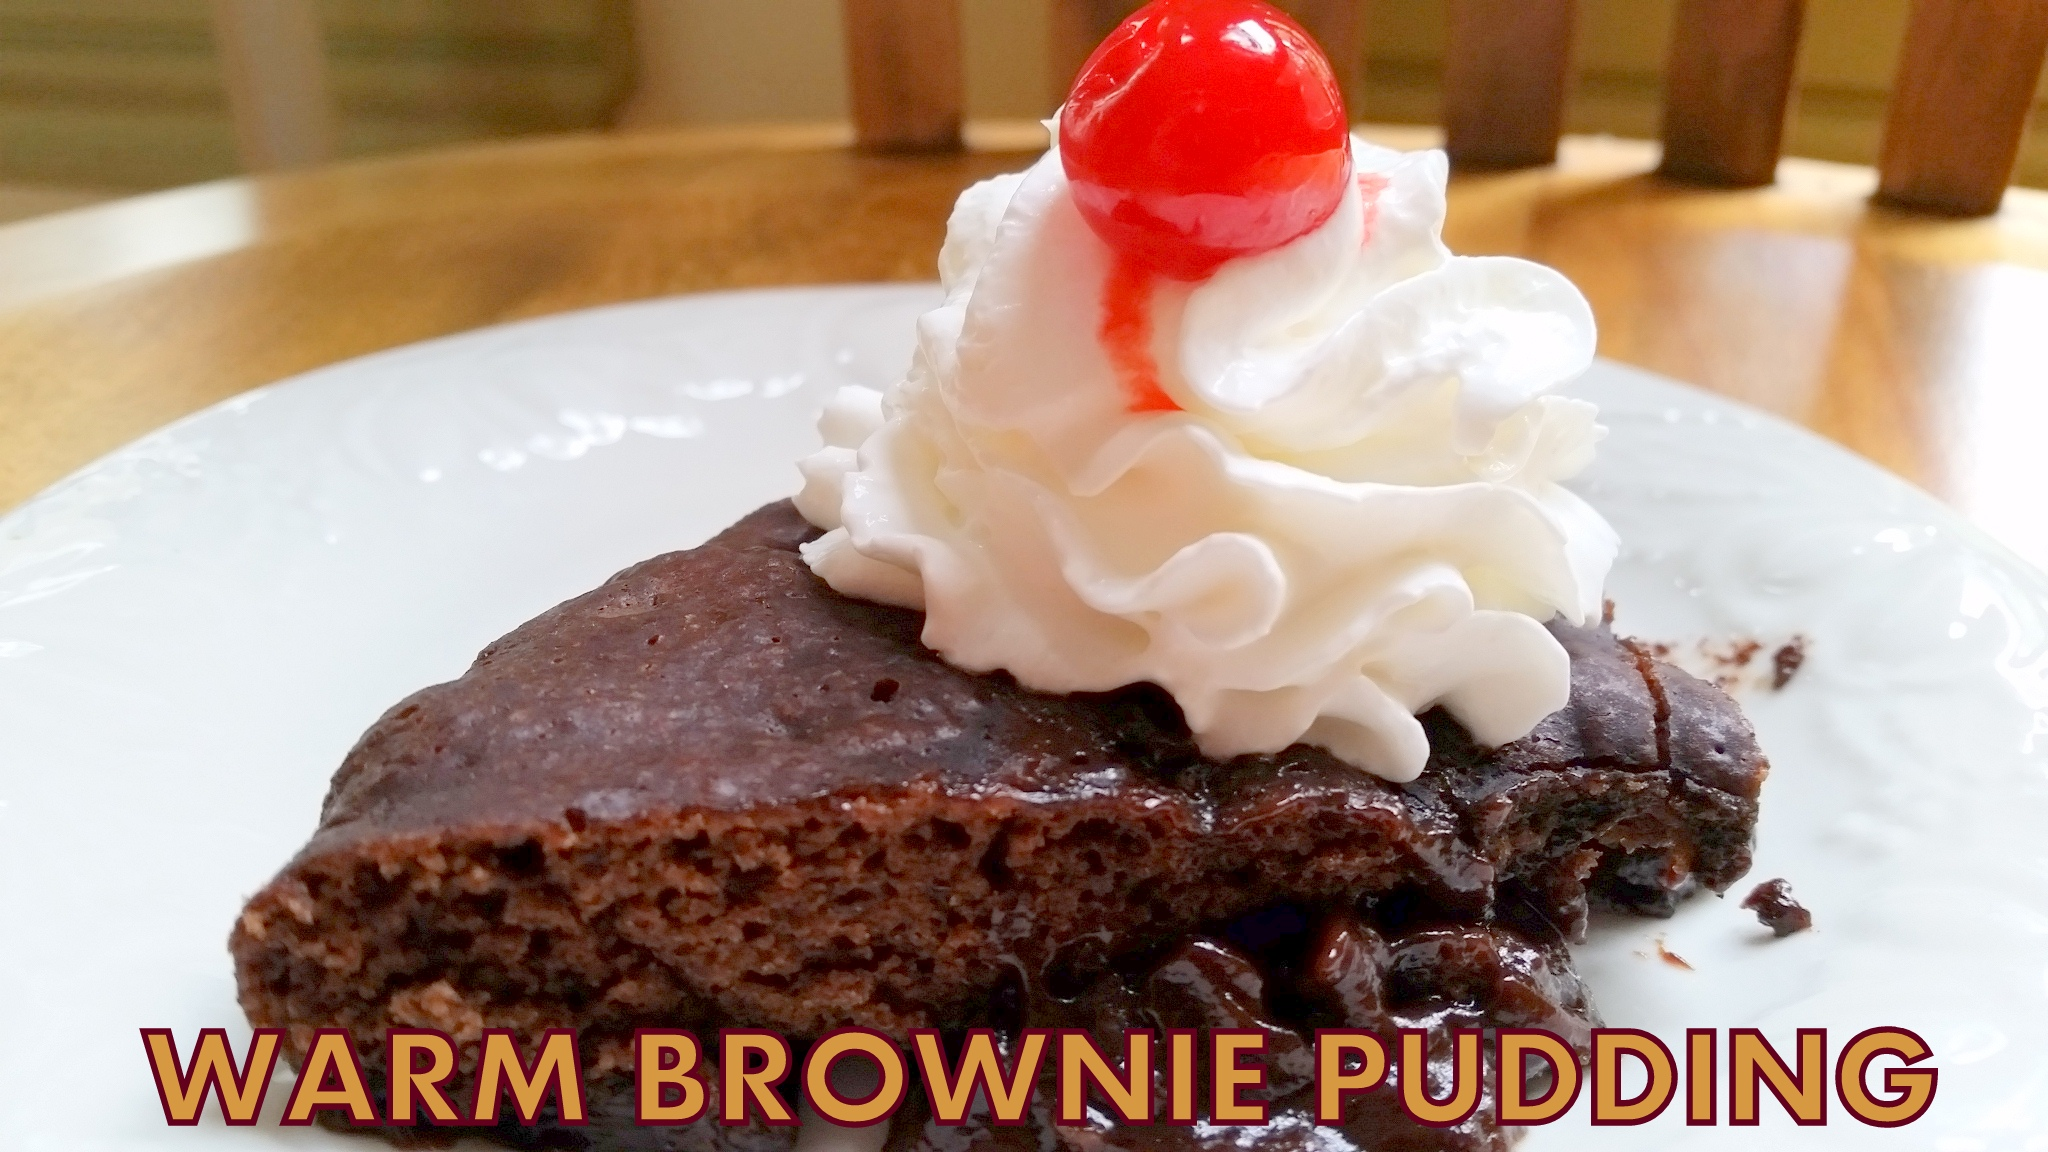 WARM BROWNIE PUDDING